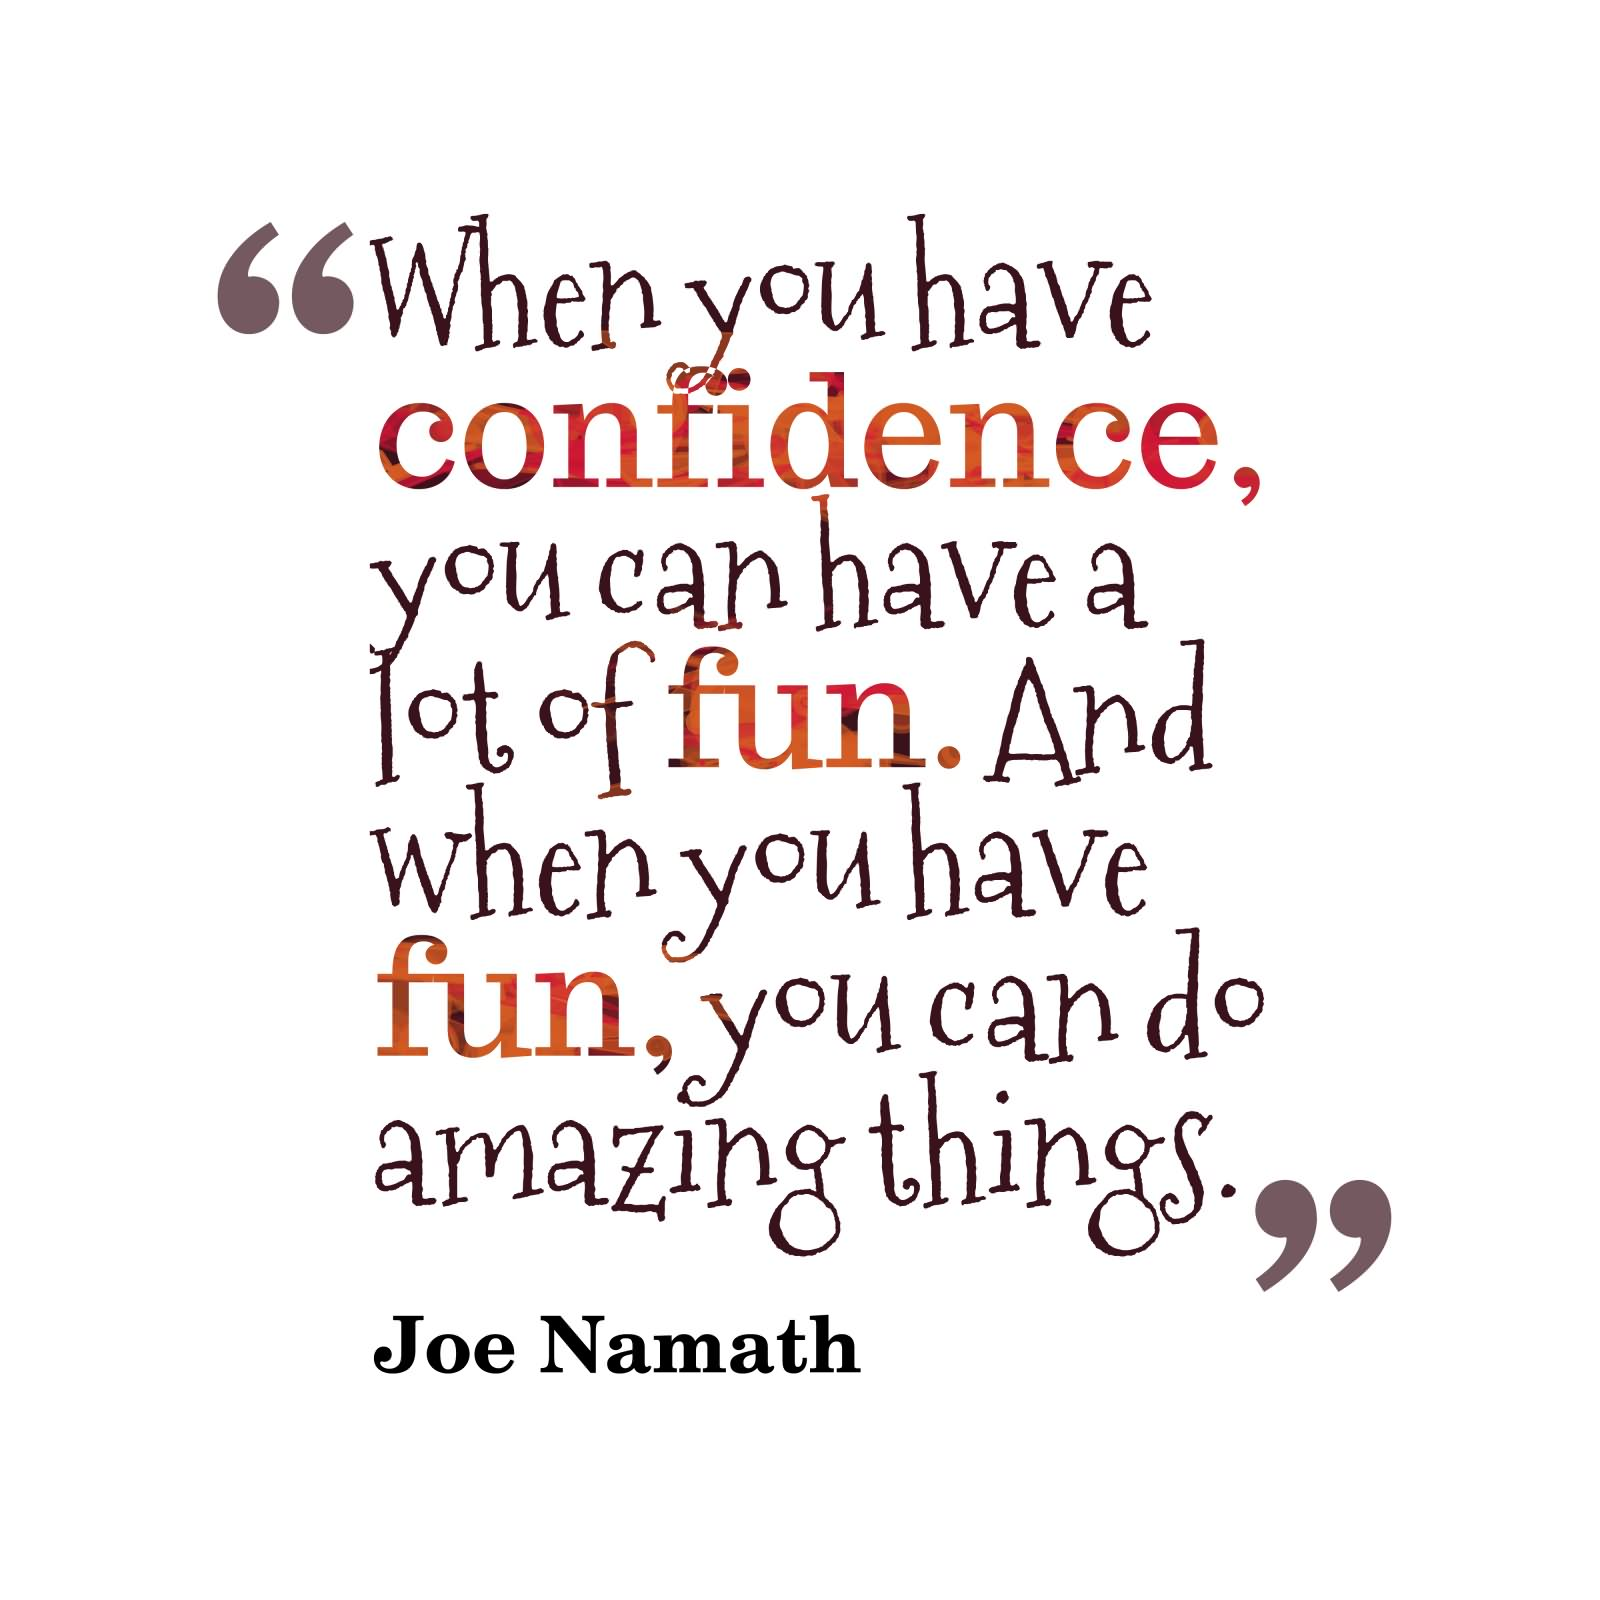 Confidence Quotes: When You Have Confidence, You Can Have A Lot Of Fun. And